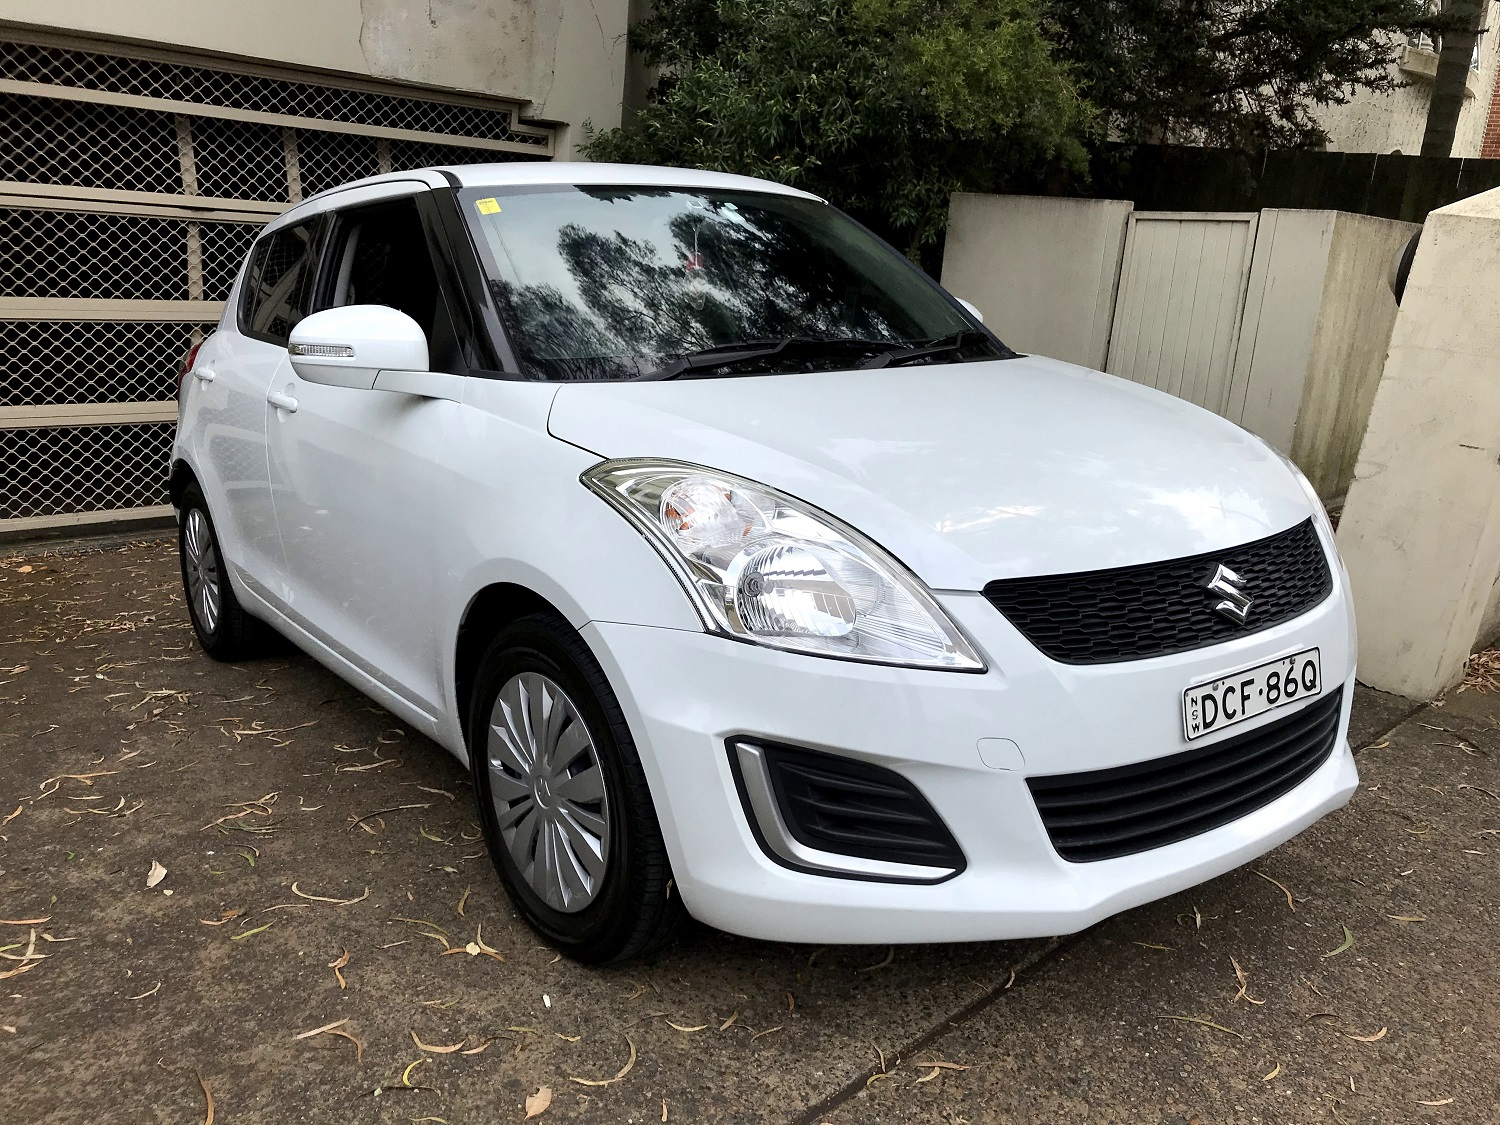 Picture of Lorena's 2015 Suzuki Swift